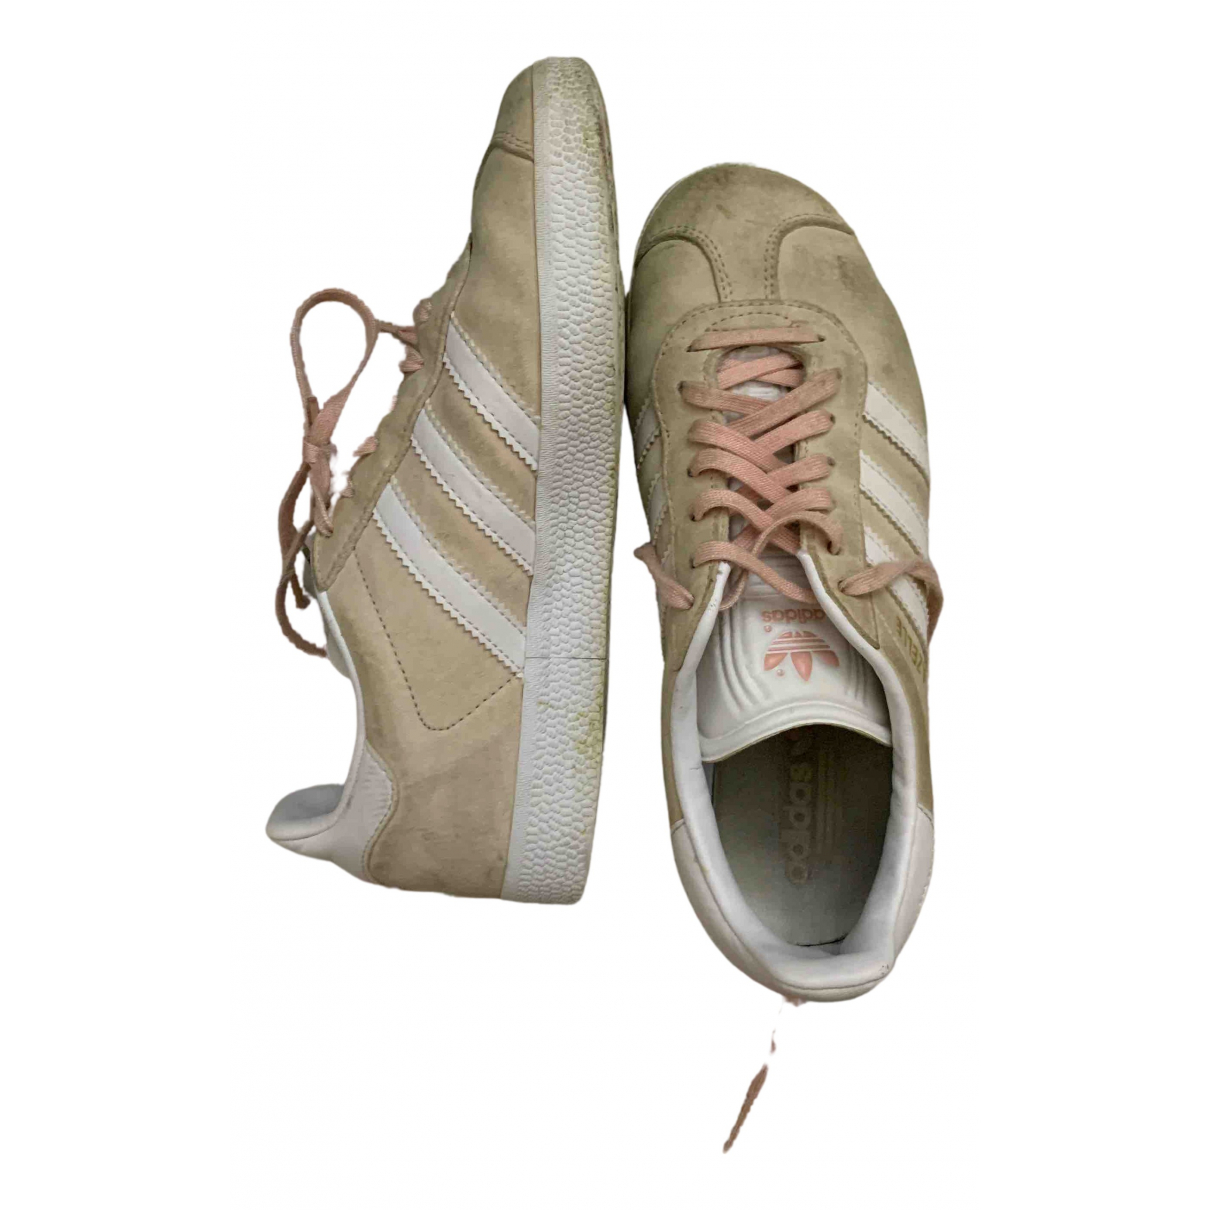 Adidas Gazelle Pink Suede Trainers for Women 36.5 IT